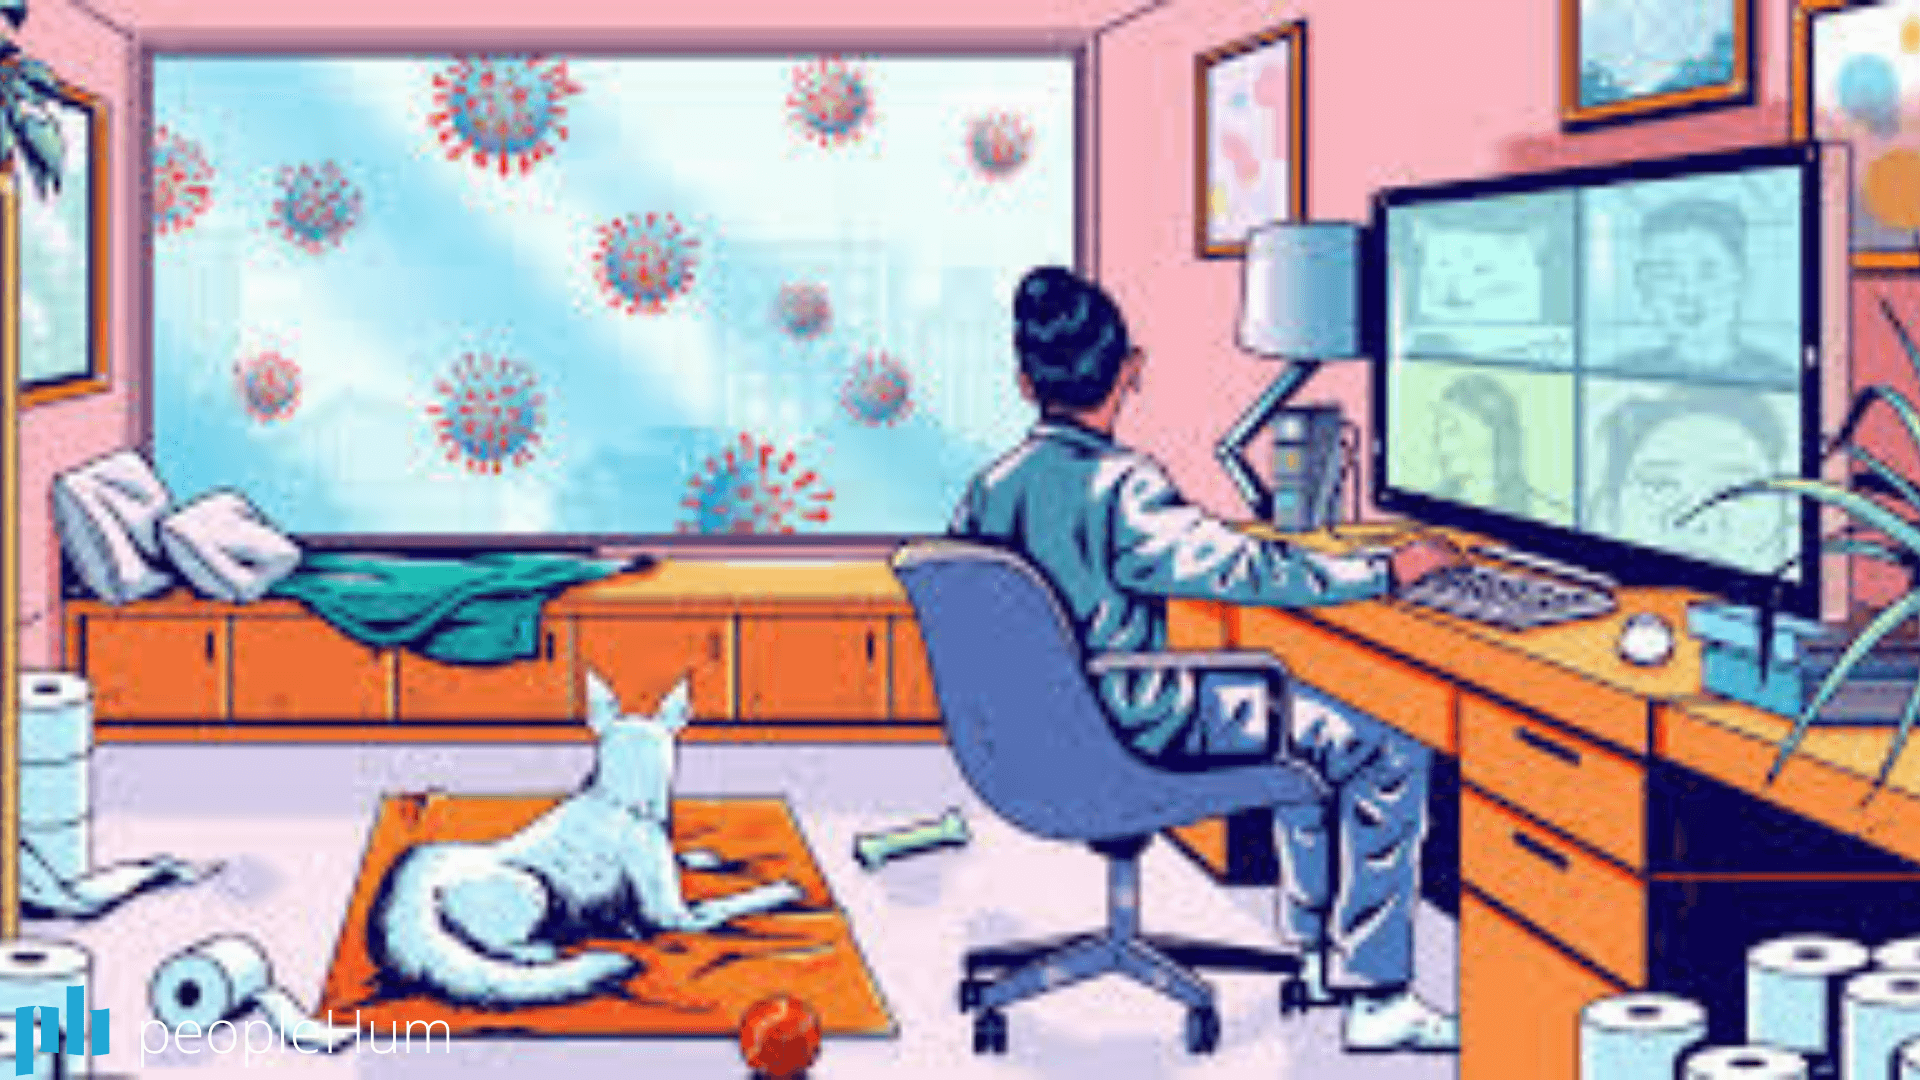 Guidebook to work from home during a pandemic